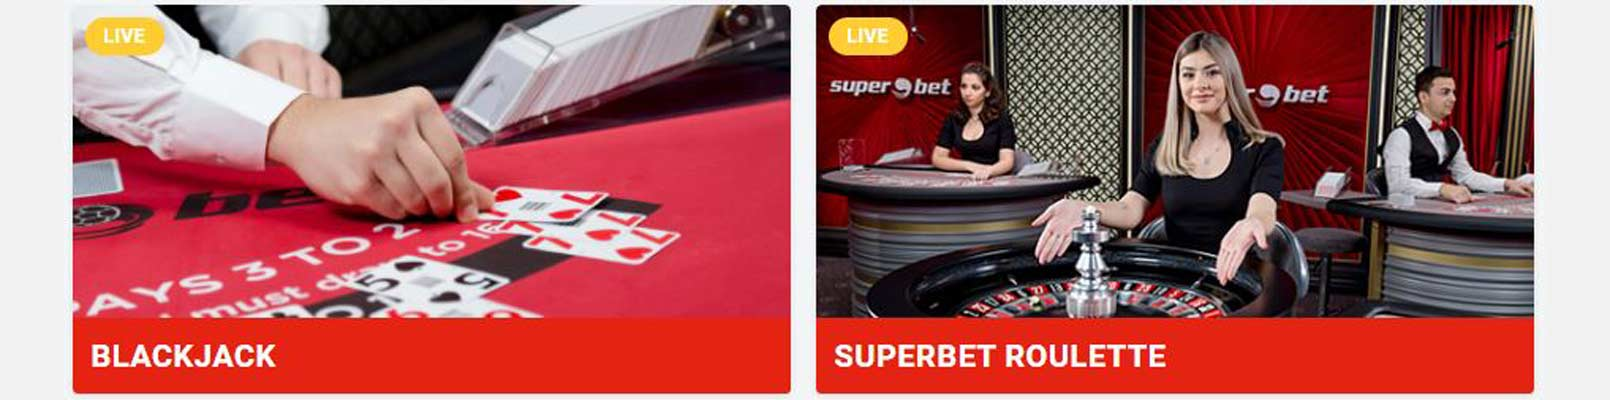 mese live superbet casino